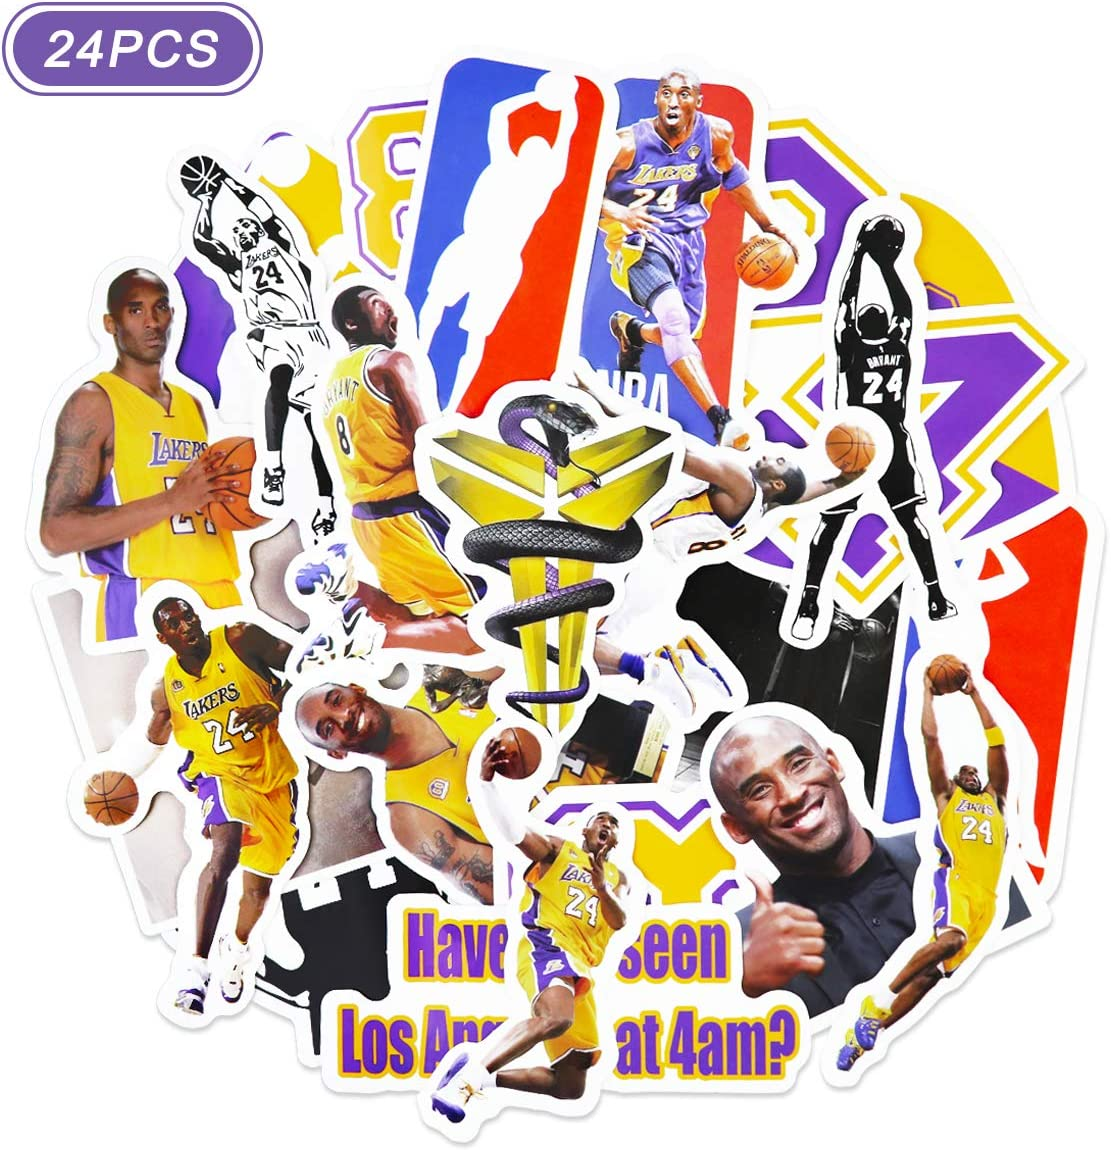 Realcome 24 Pcs Kobe Stickers Lakers Stickers